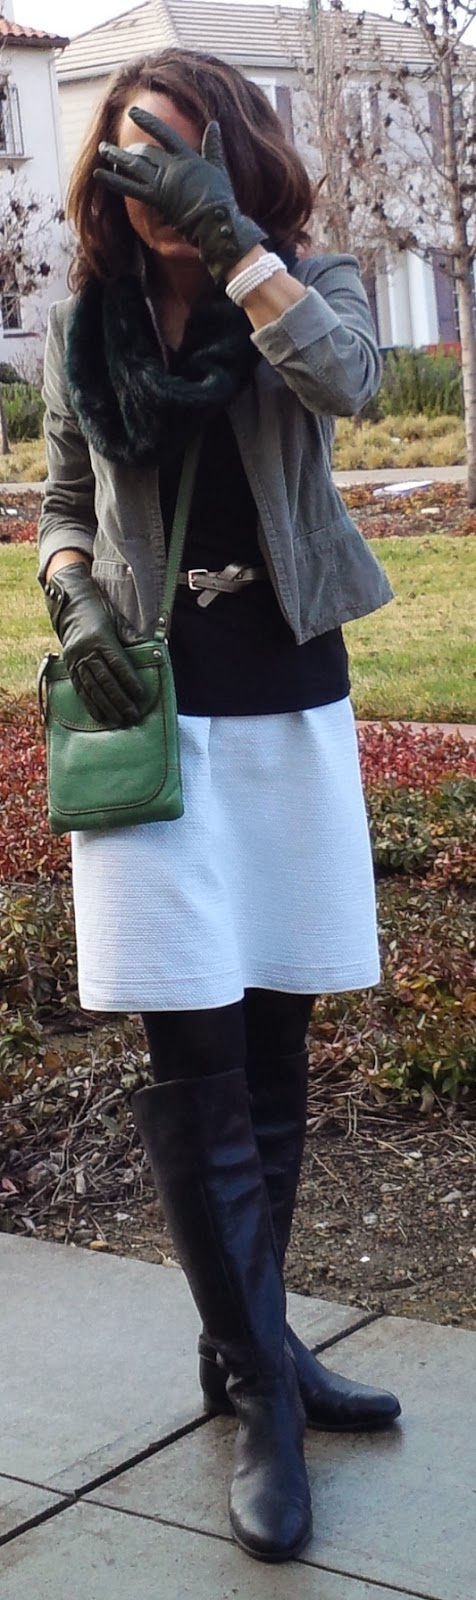 blog.oanasinga.com-outfit-ideas-personal-style-photos-wearing-white-skirt-during-winter-combining-black-white-and-several-shades-of-green-1